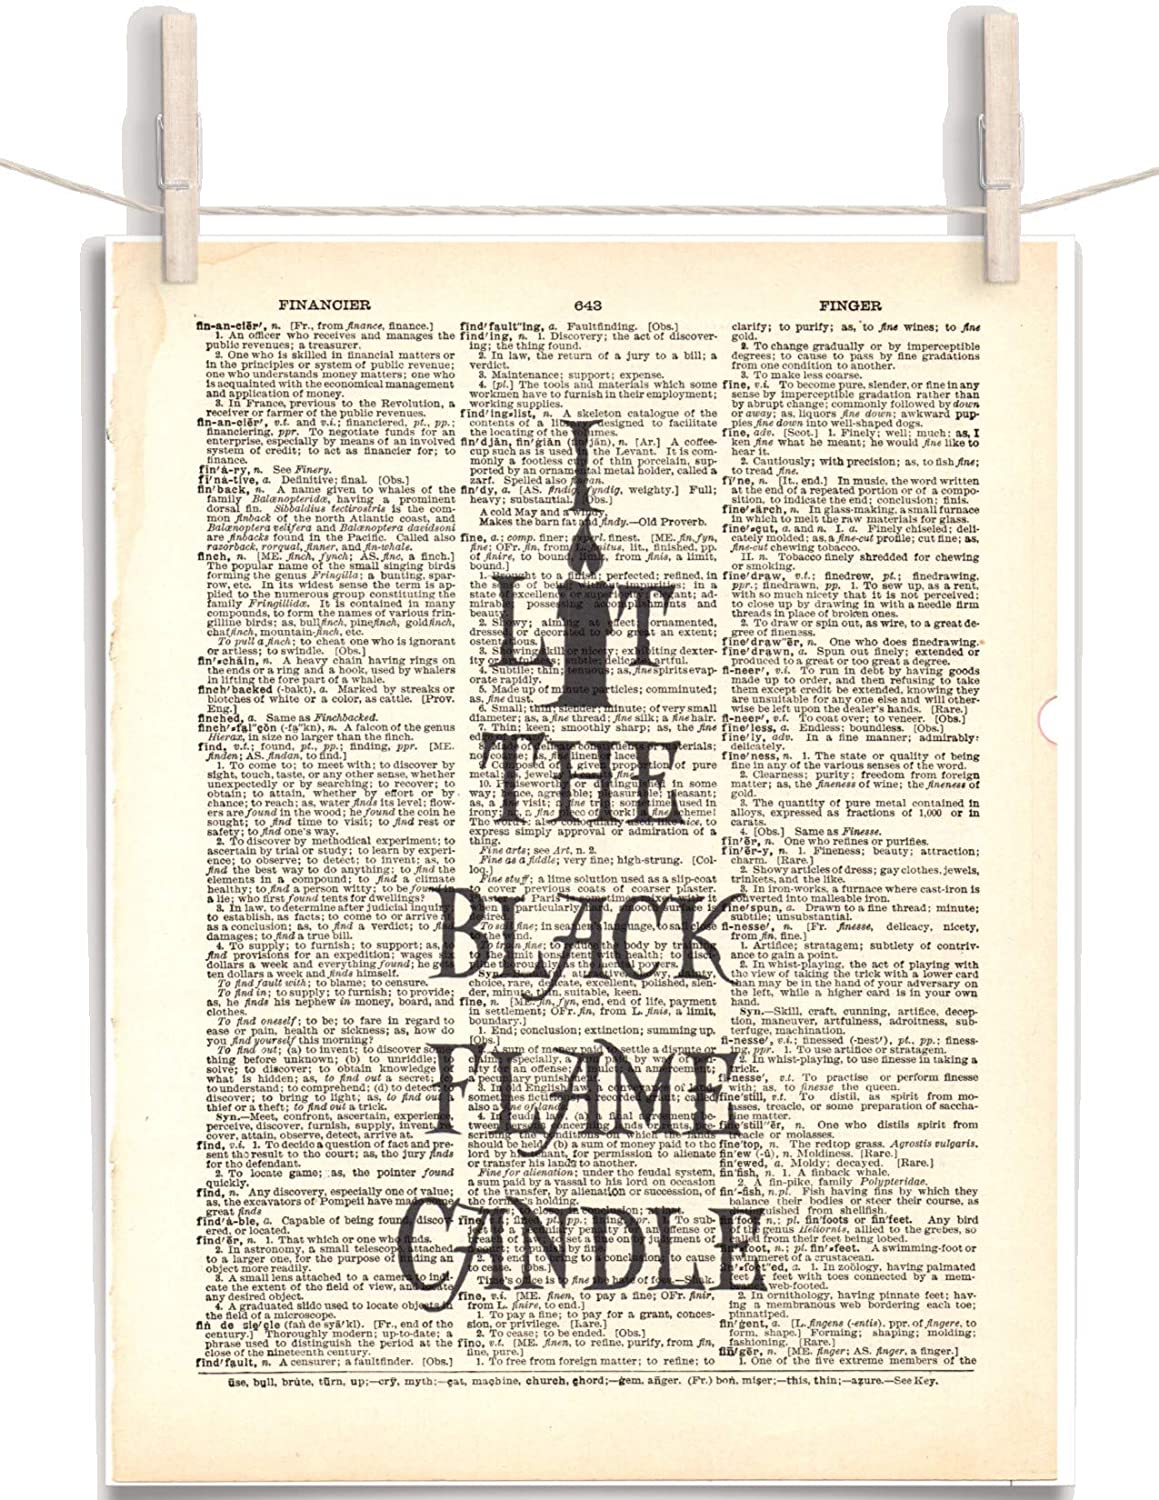 Hocus Pocus I 70% OFF Outlet Lit The Black Flame Directly managed store Candle 8.5 Vintage Dictio 11 x